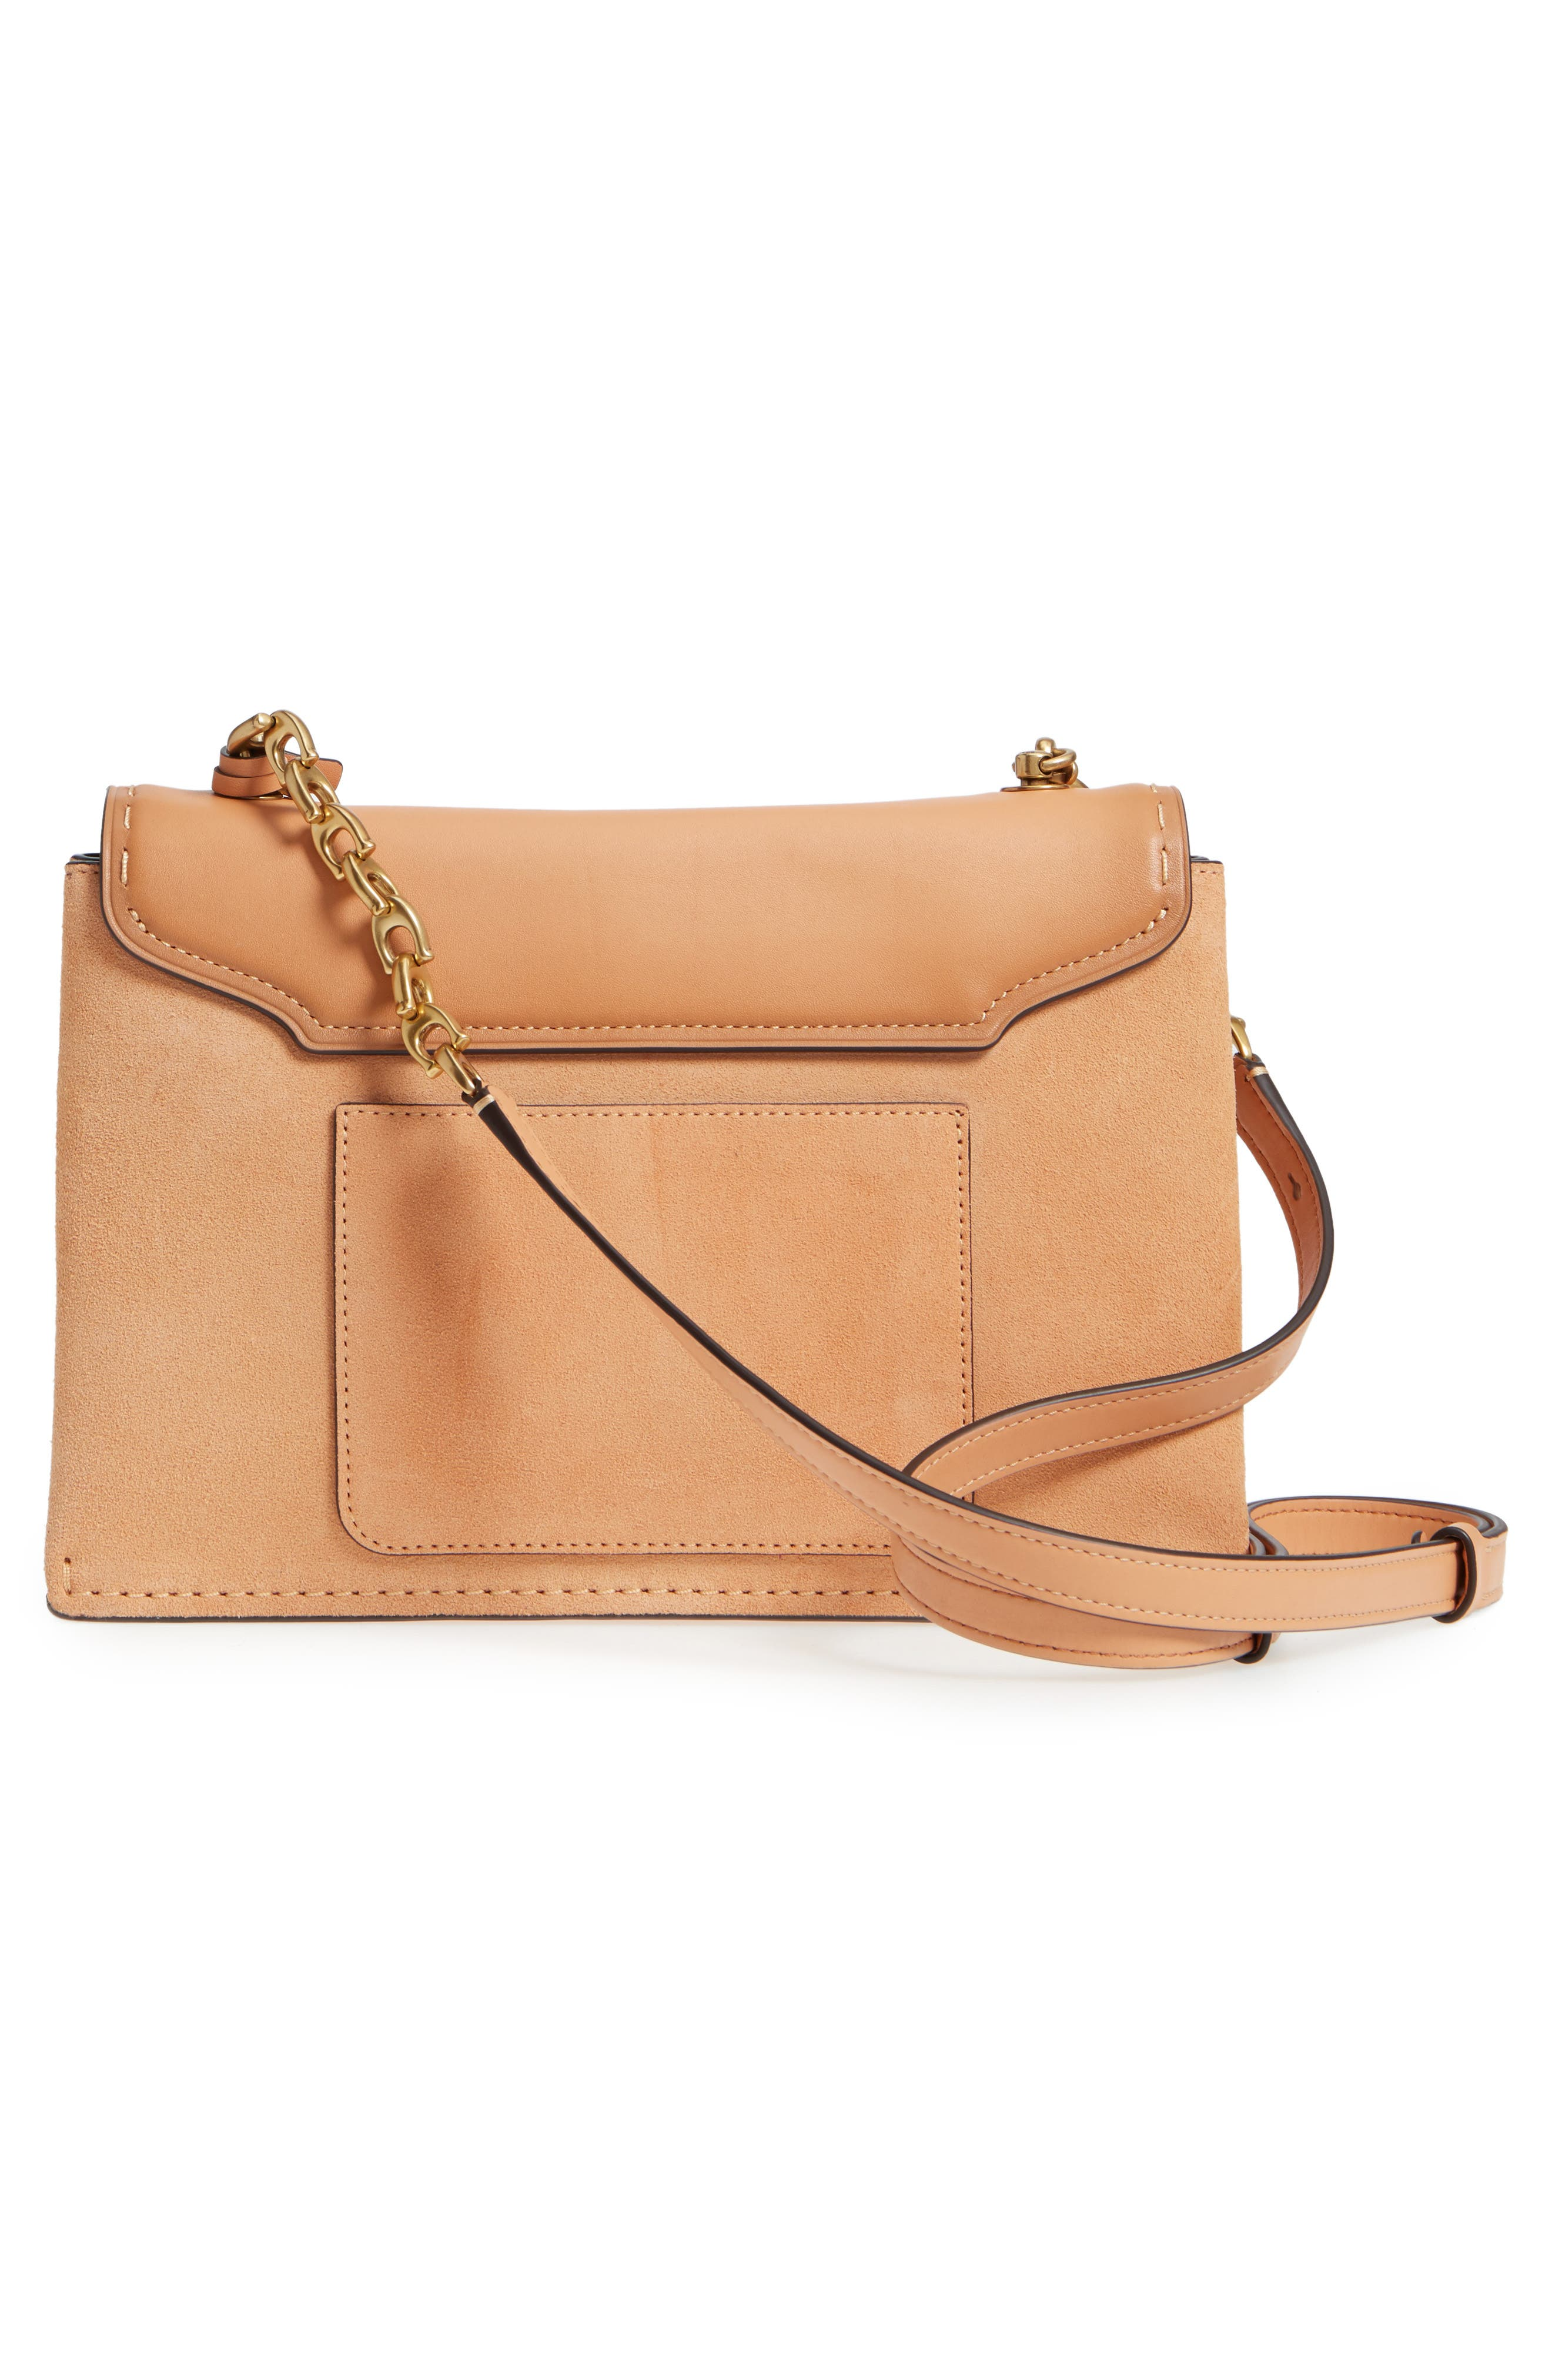 Swagger Chain Leather Crossbody Bag,                             Alternate thumbnail 3, color,                             Apricot Sand